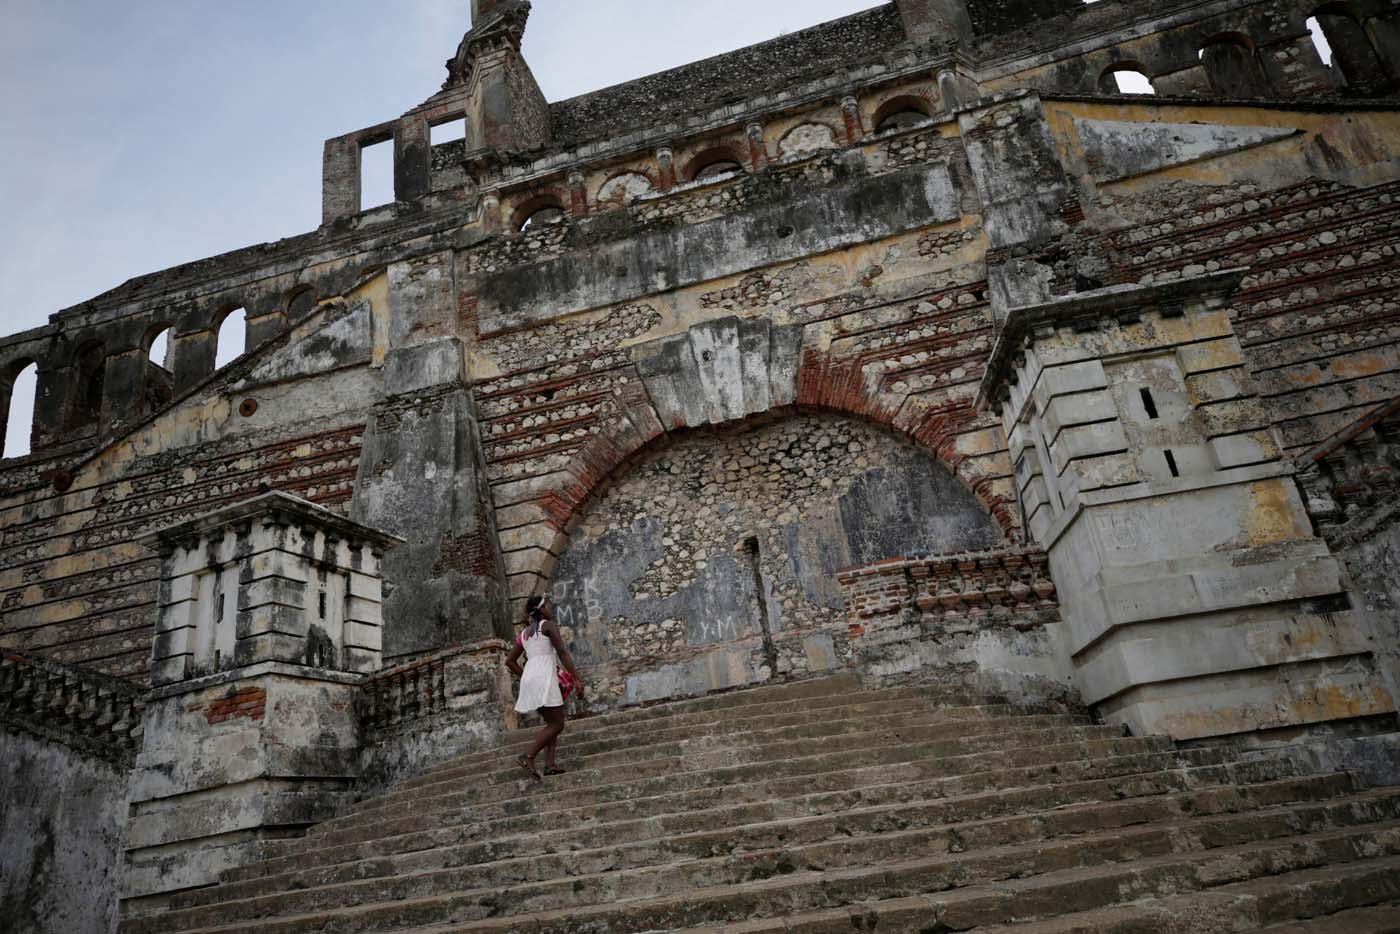 A woman climbs the stairs on the remains of Sans-Souci Palace in Milot, Haiti, September 8, 2017. REUTERS/Andres Martinez Casares